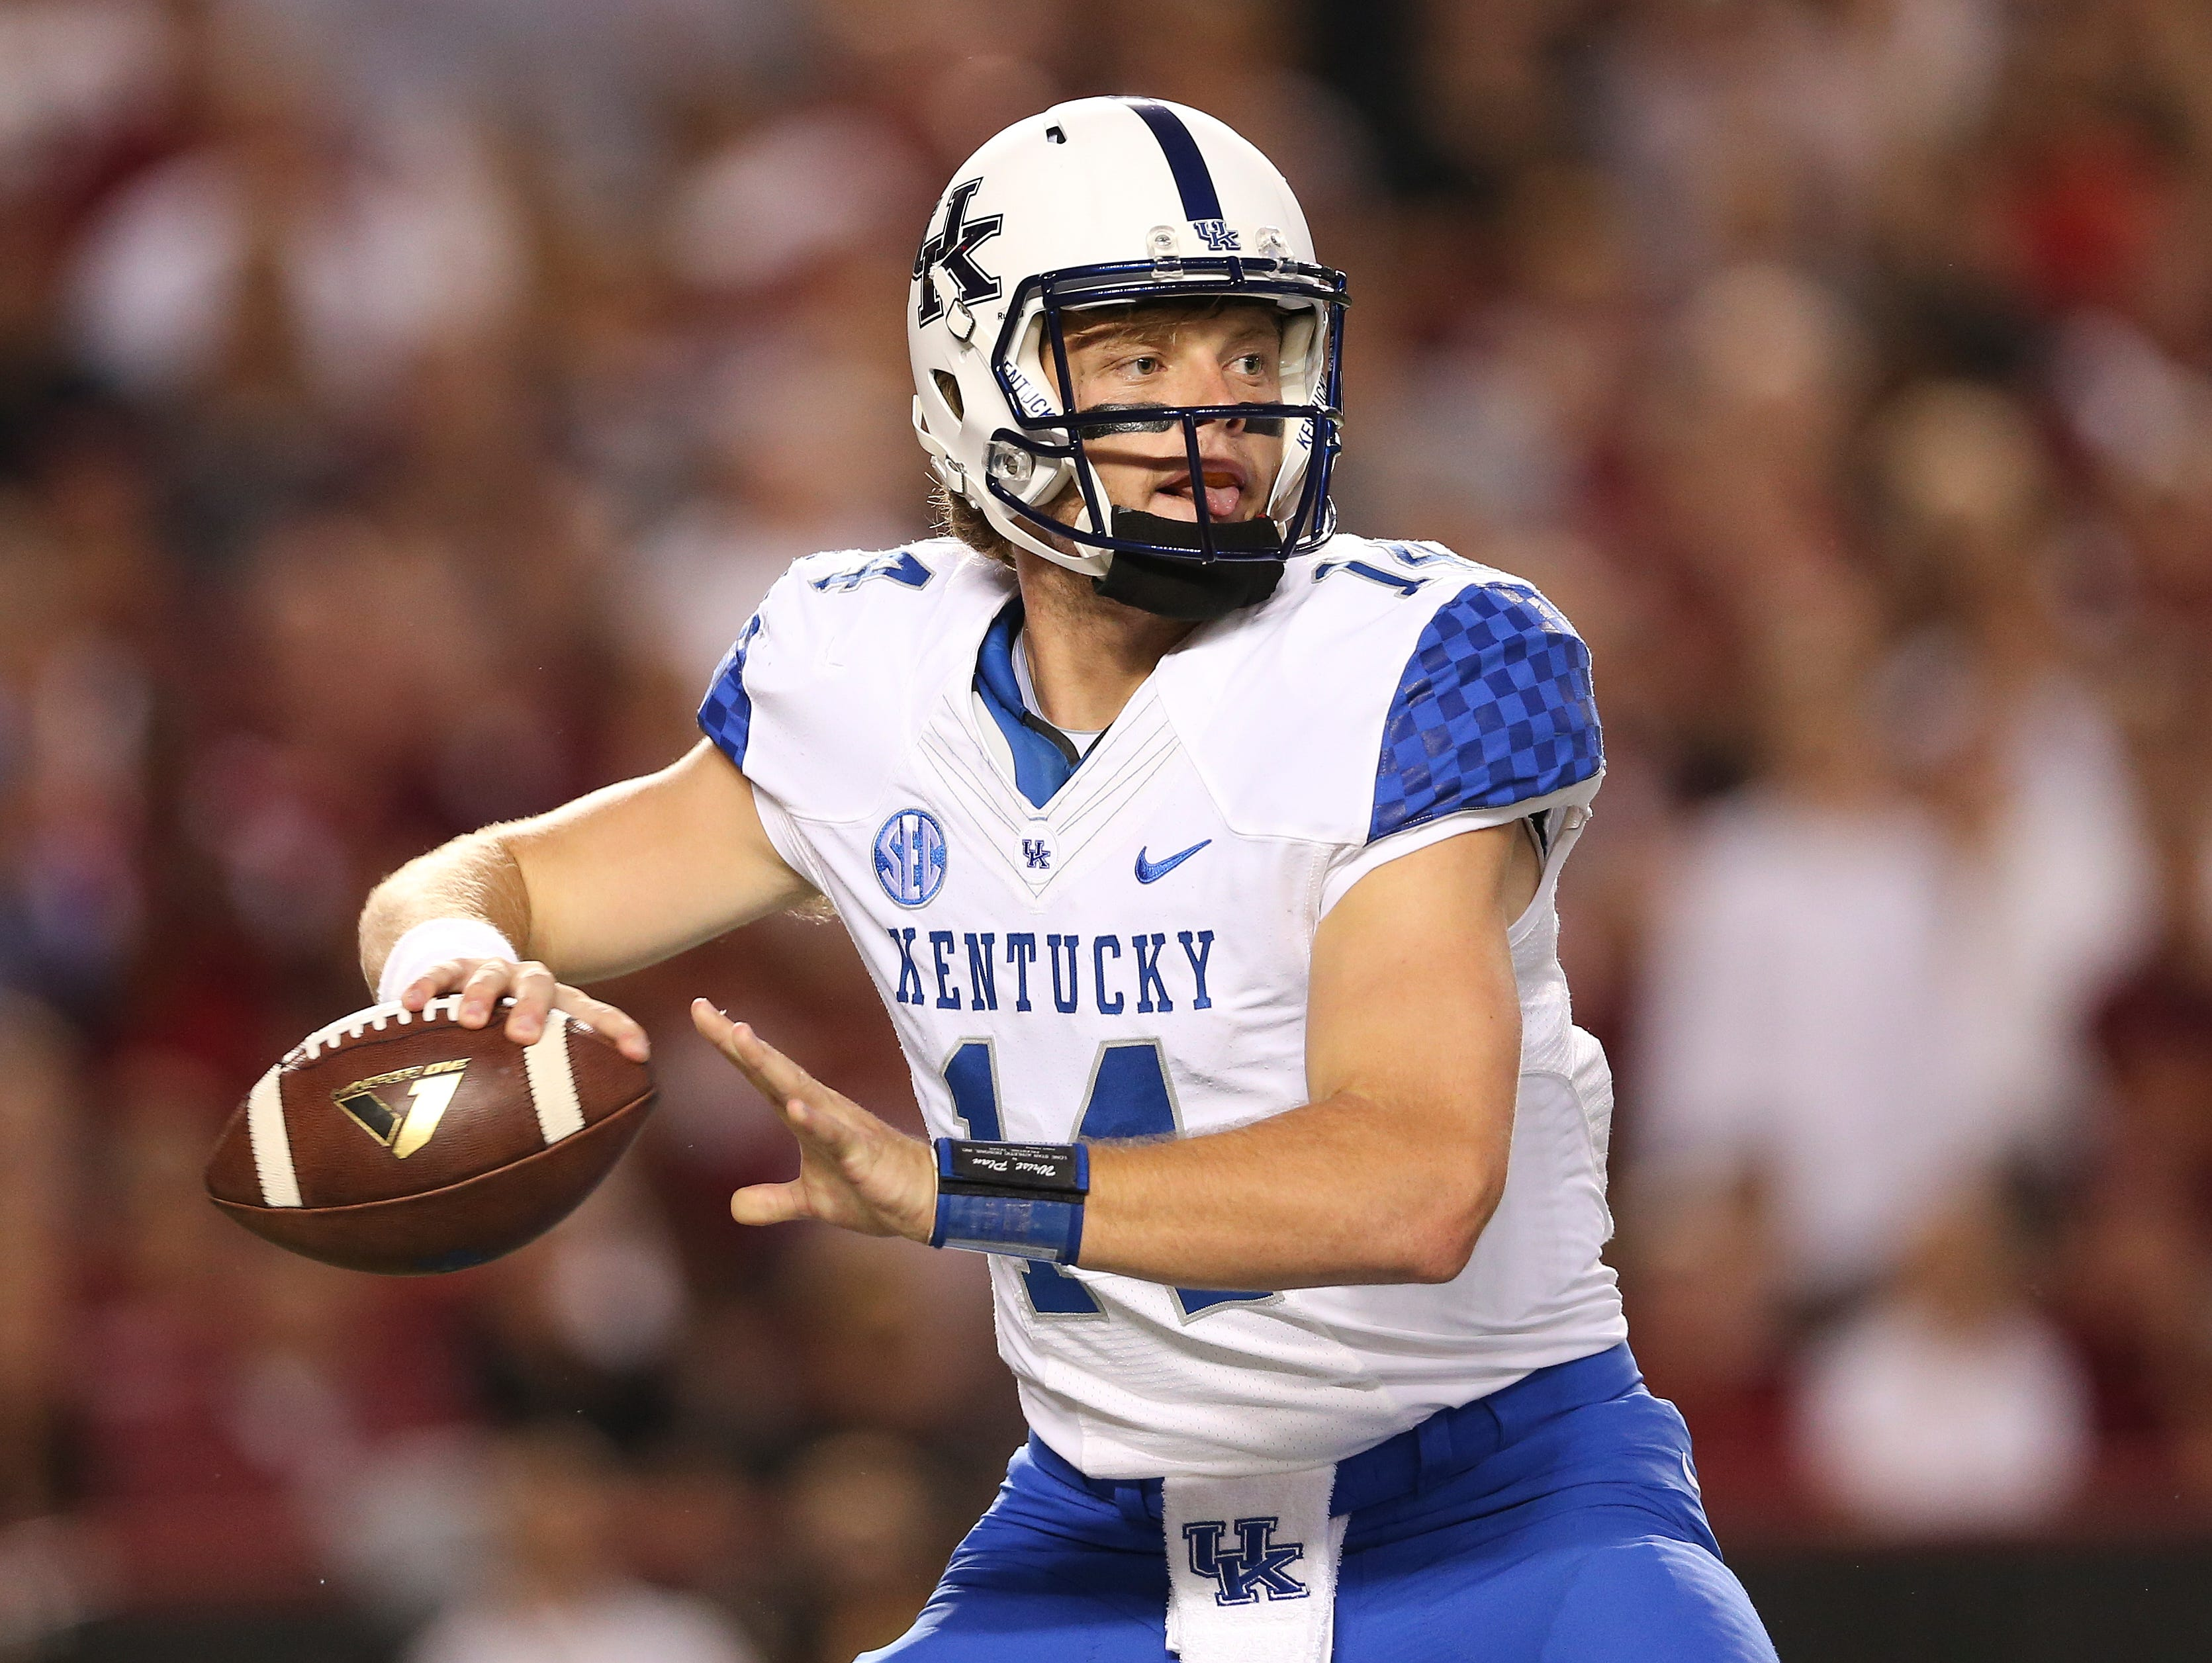 Kentucky Wildcats quarterback Patrick Towles (14) looks for an open receiver in the first half of an NCAA college football game against South Carolina Saturday, Sept. 12, 2015, in Columbia, S.C.